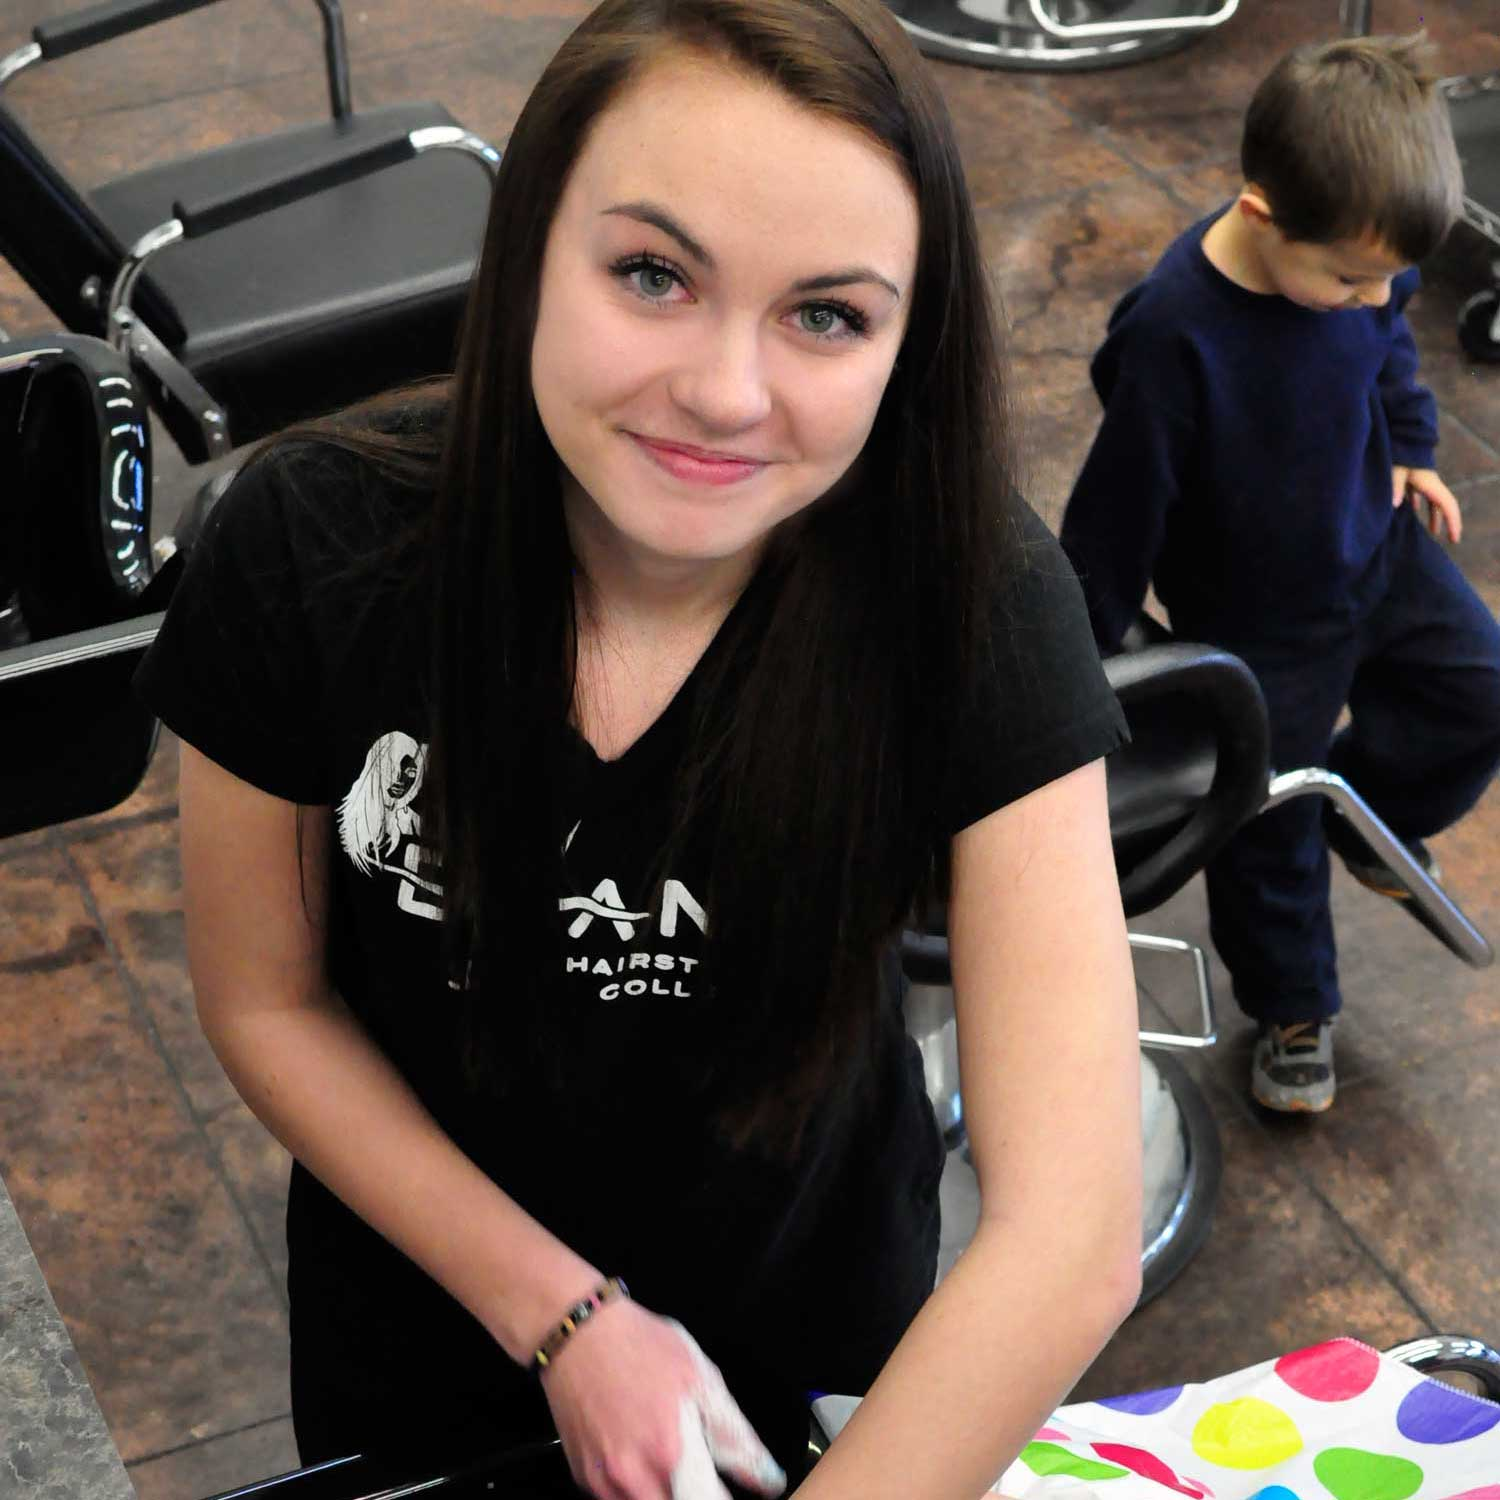 How Evans Hairstyling College Is Going To Change Your